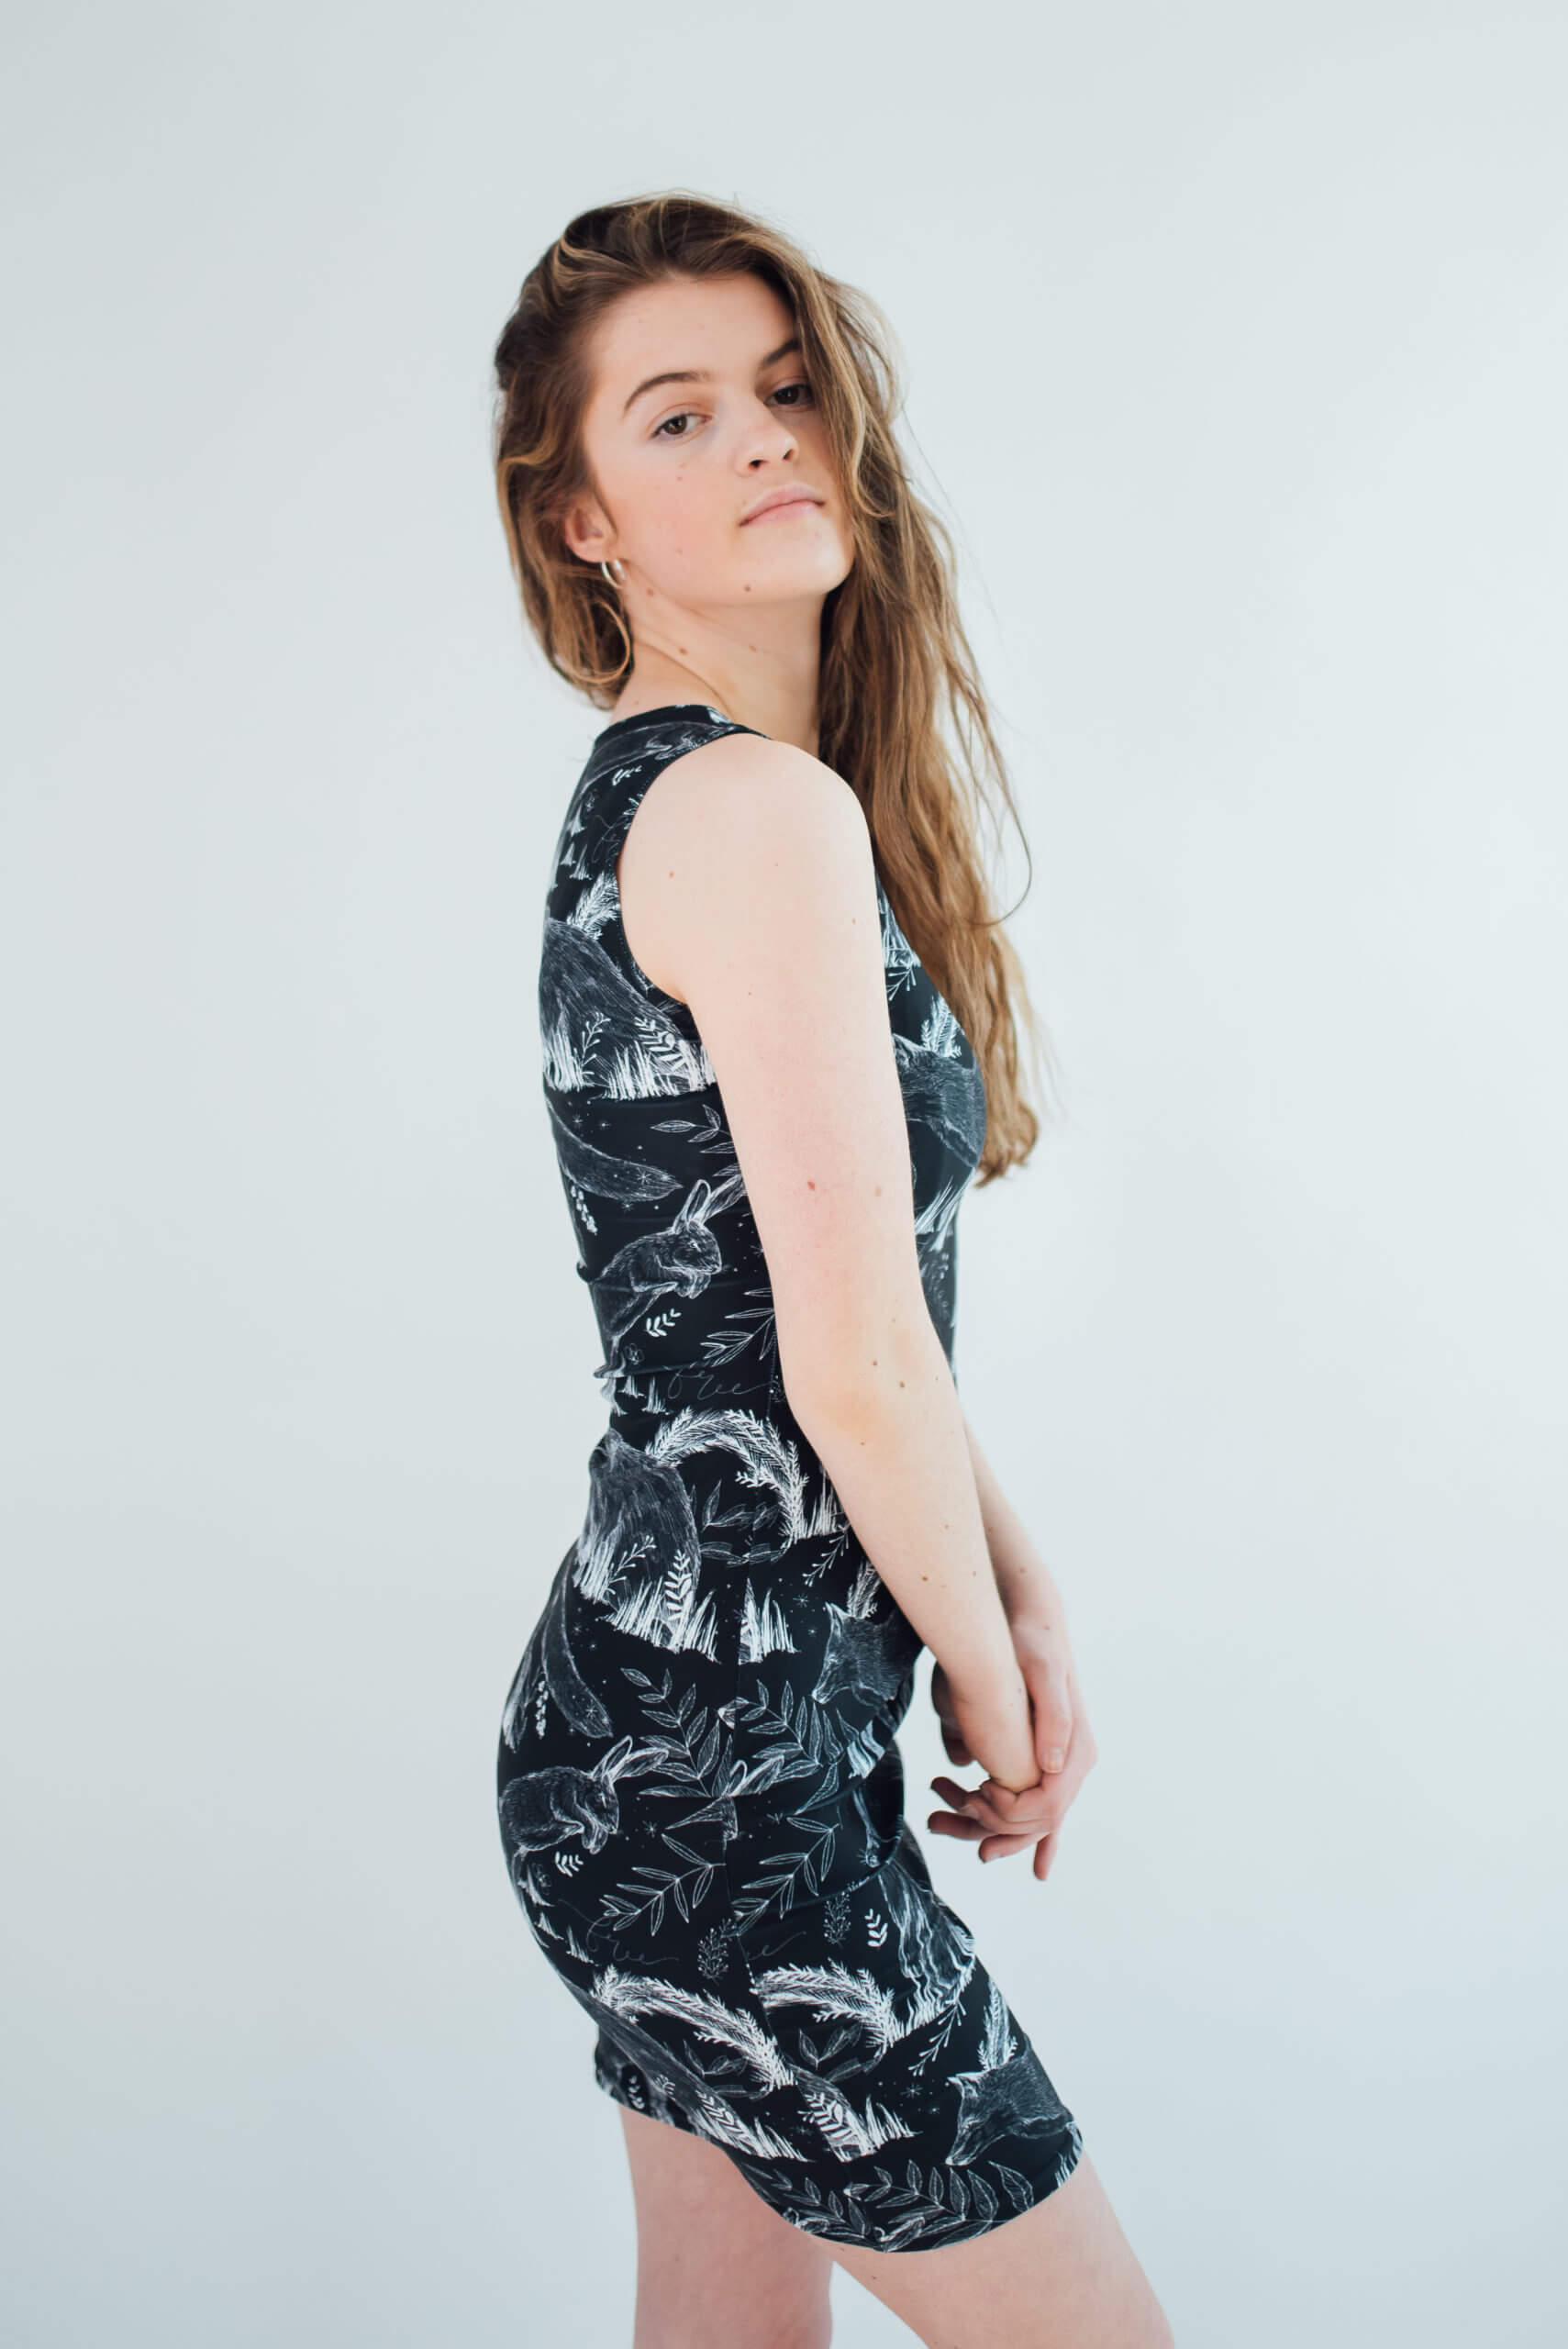 Vegan Model wearing wildlife dress side view